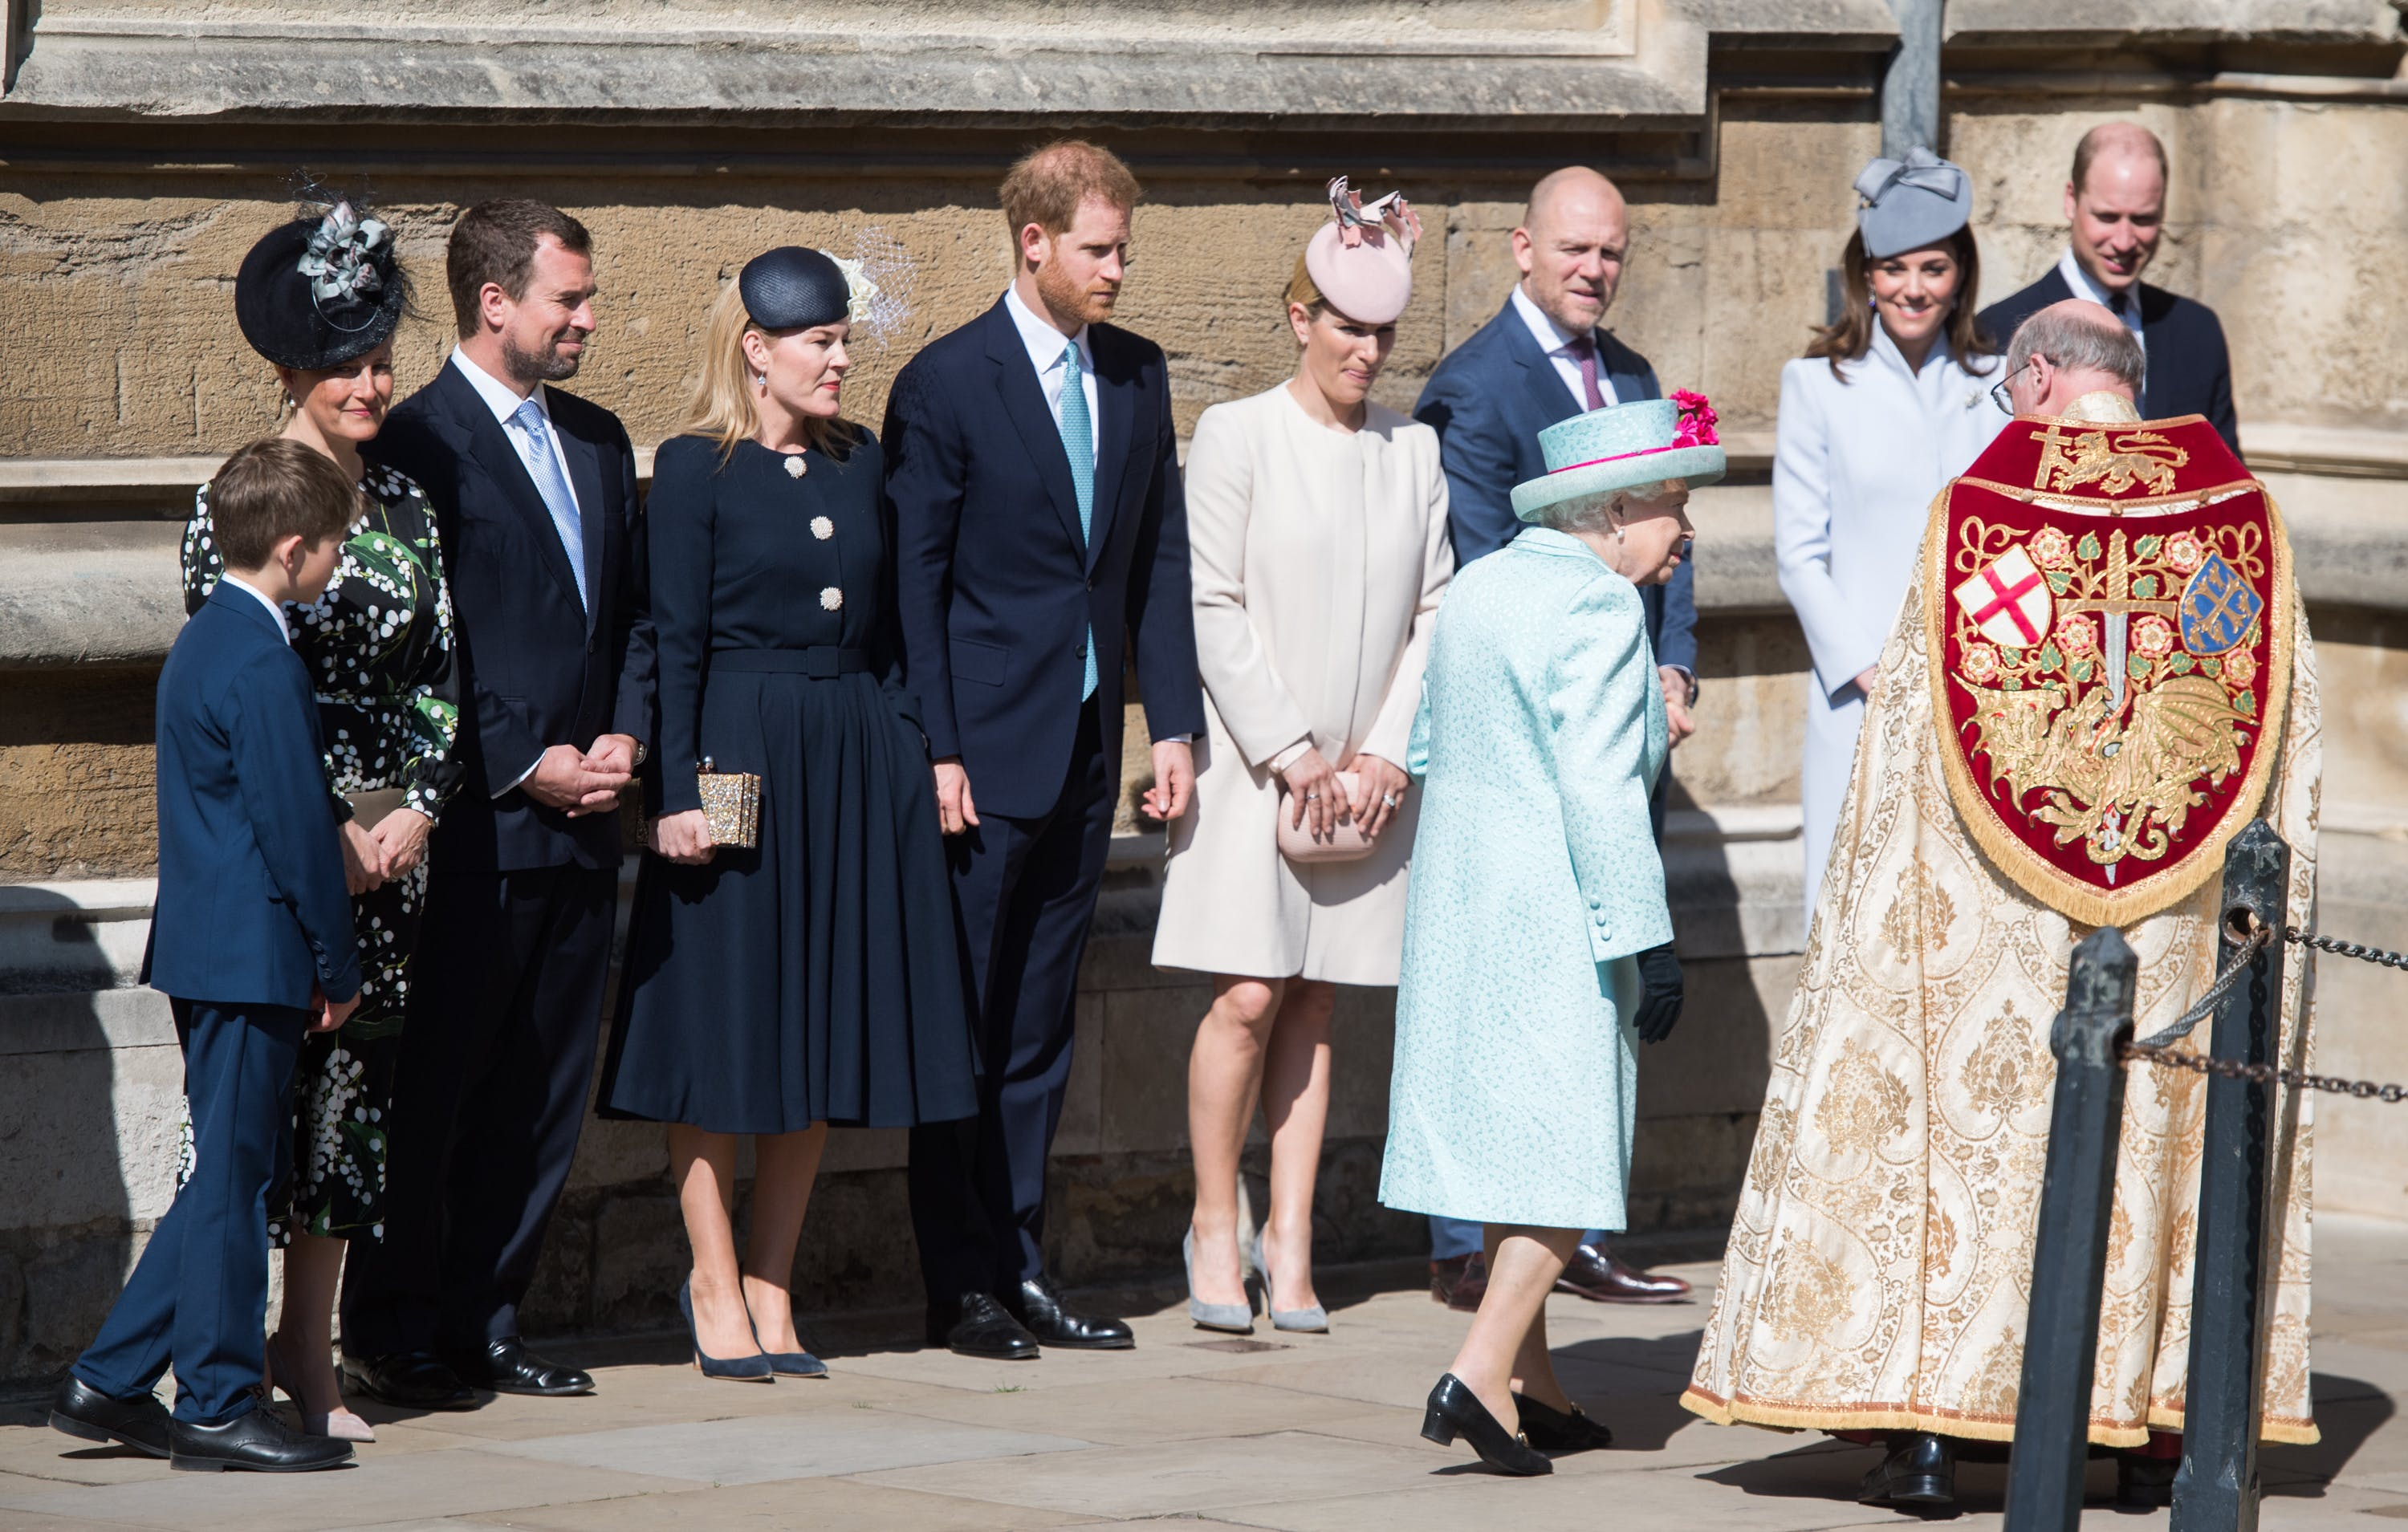 Princess Beatrice Stole the Show in a Custom Frock at Queen Elizabeth's Birthday Mass